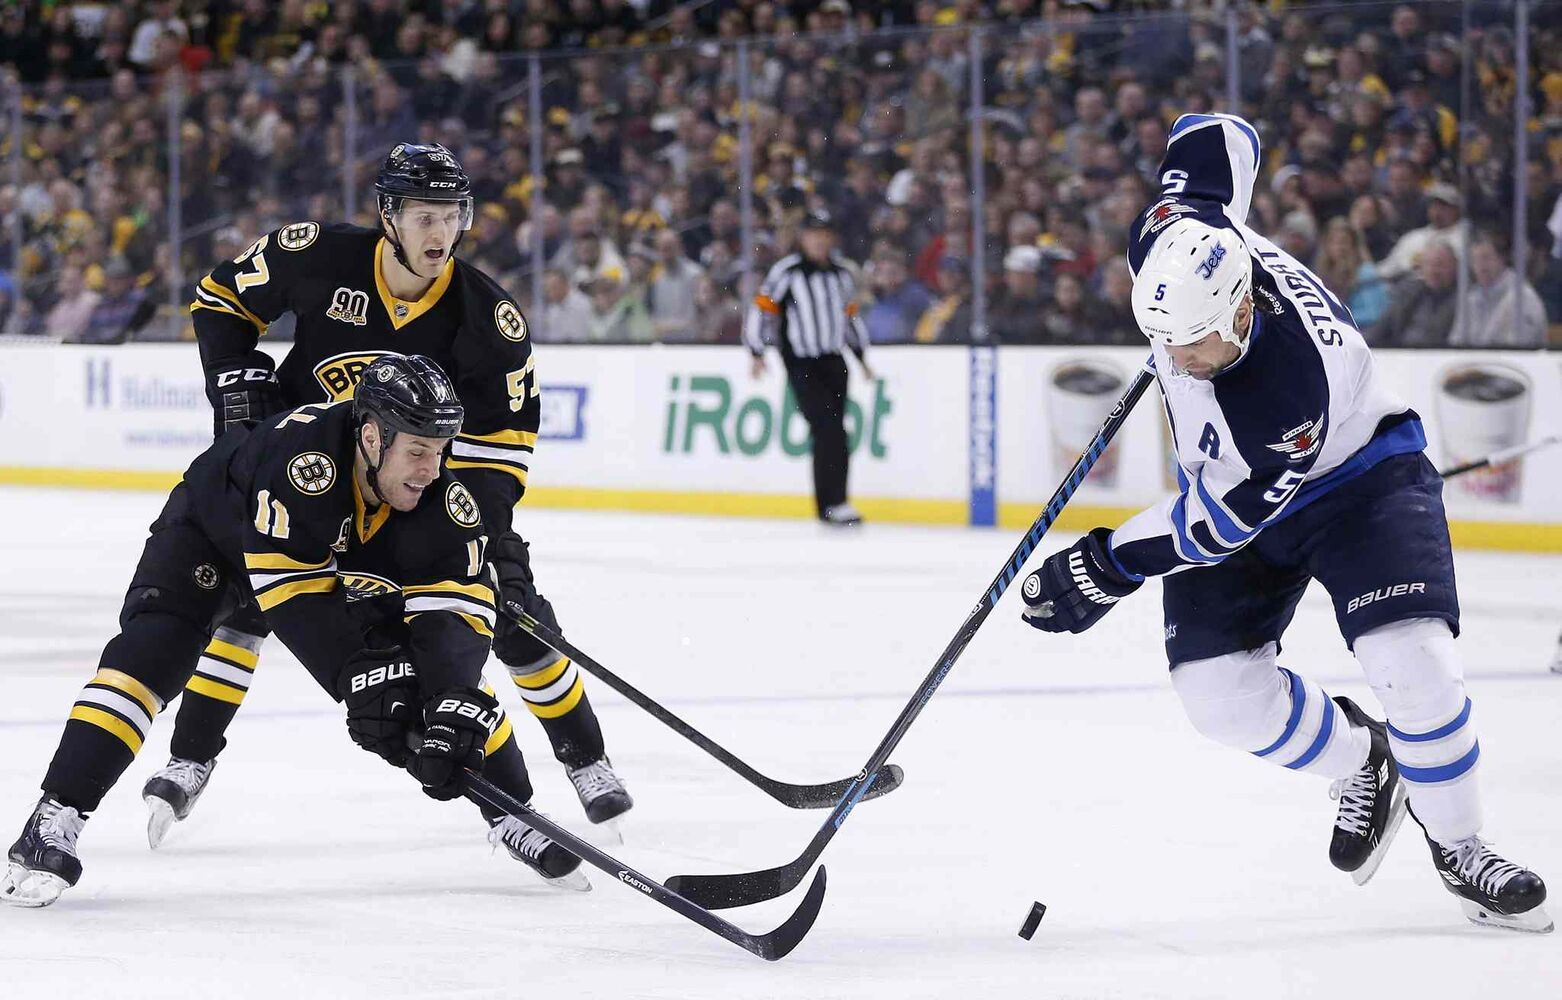 Boston Bruins' Gregory Campbell (11) and Winnipeg Jets' Mark Stuart (5) battle for the puck in the second period of an NHL hockey game in Boston Saturday.